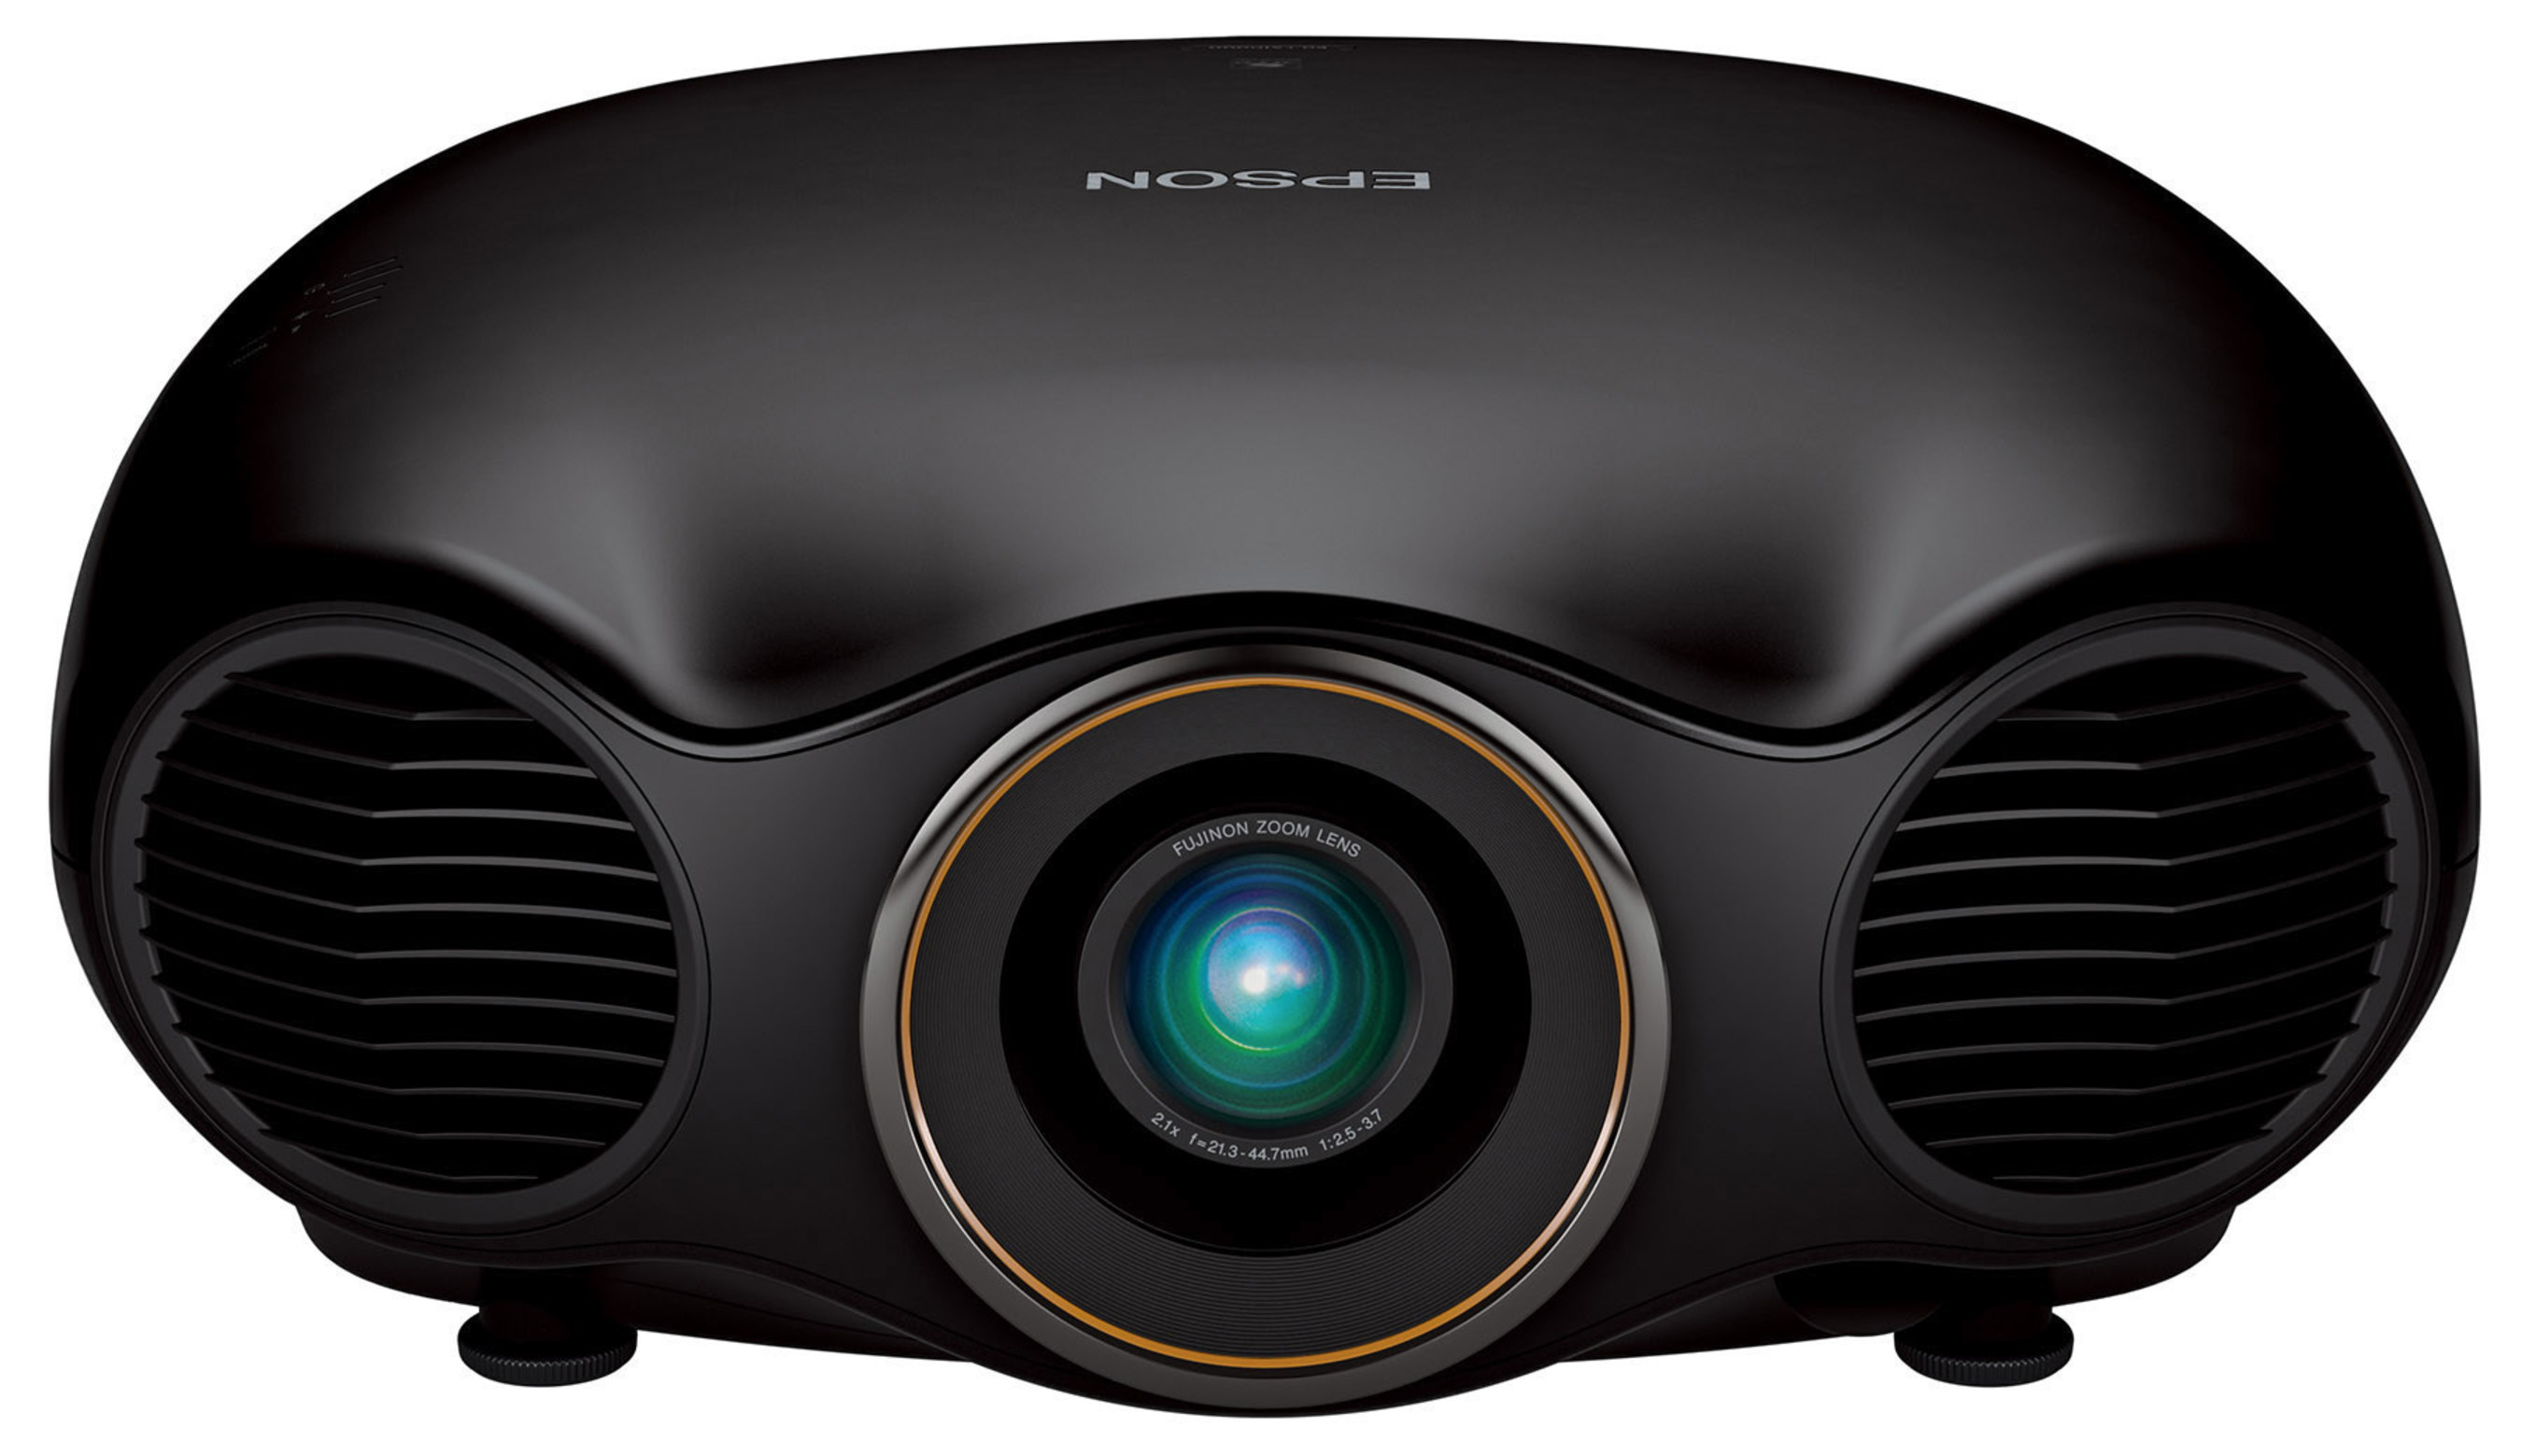 Epson Pro Cinema LS10500 Reflective Laser Projector with 4K Enhancement and HDR Support